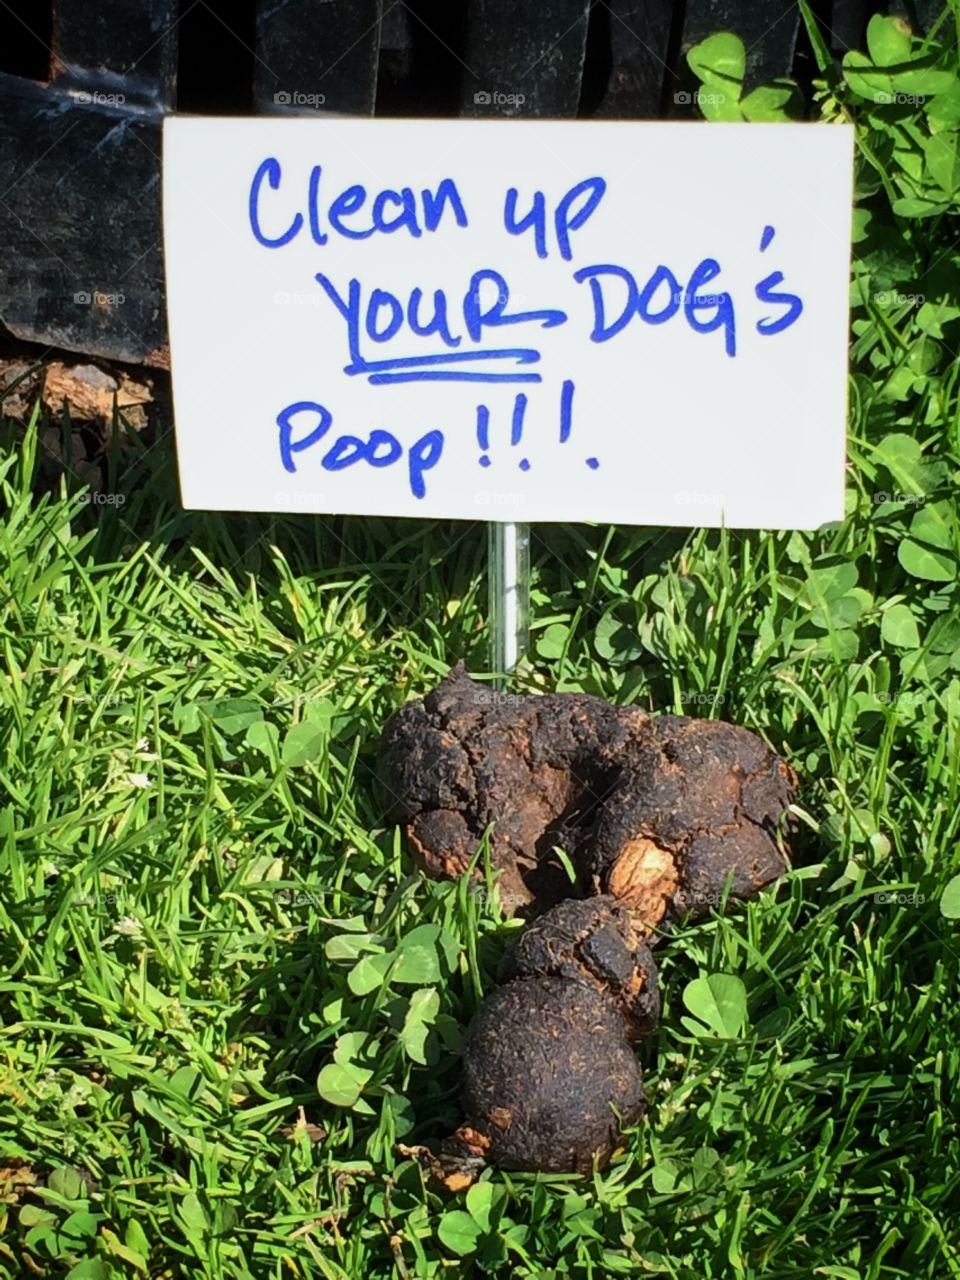 Dog poop with sign